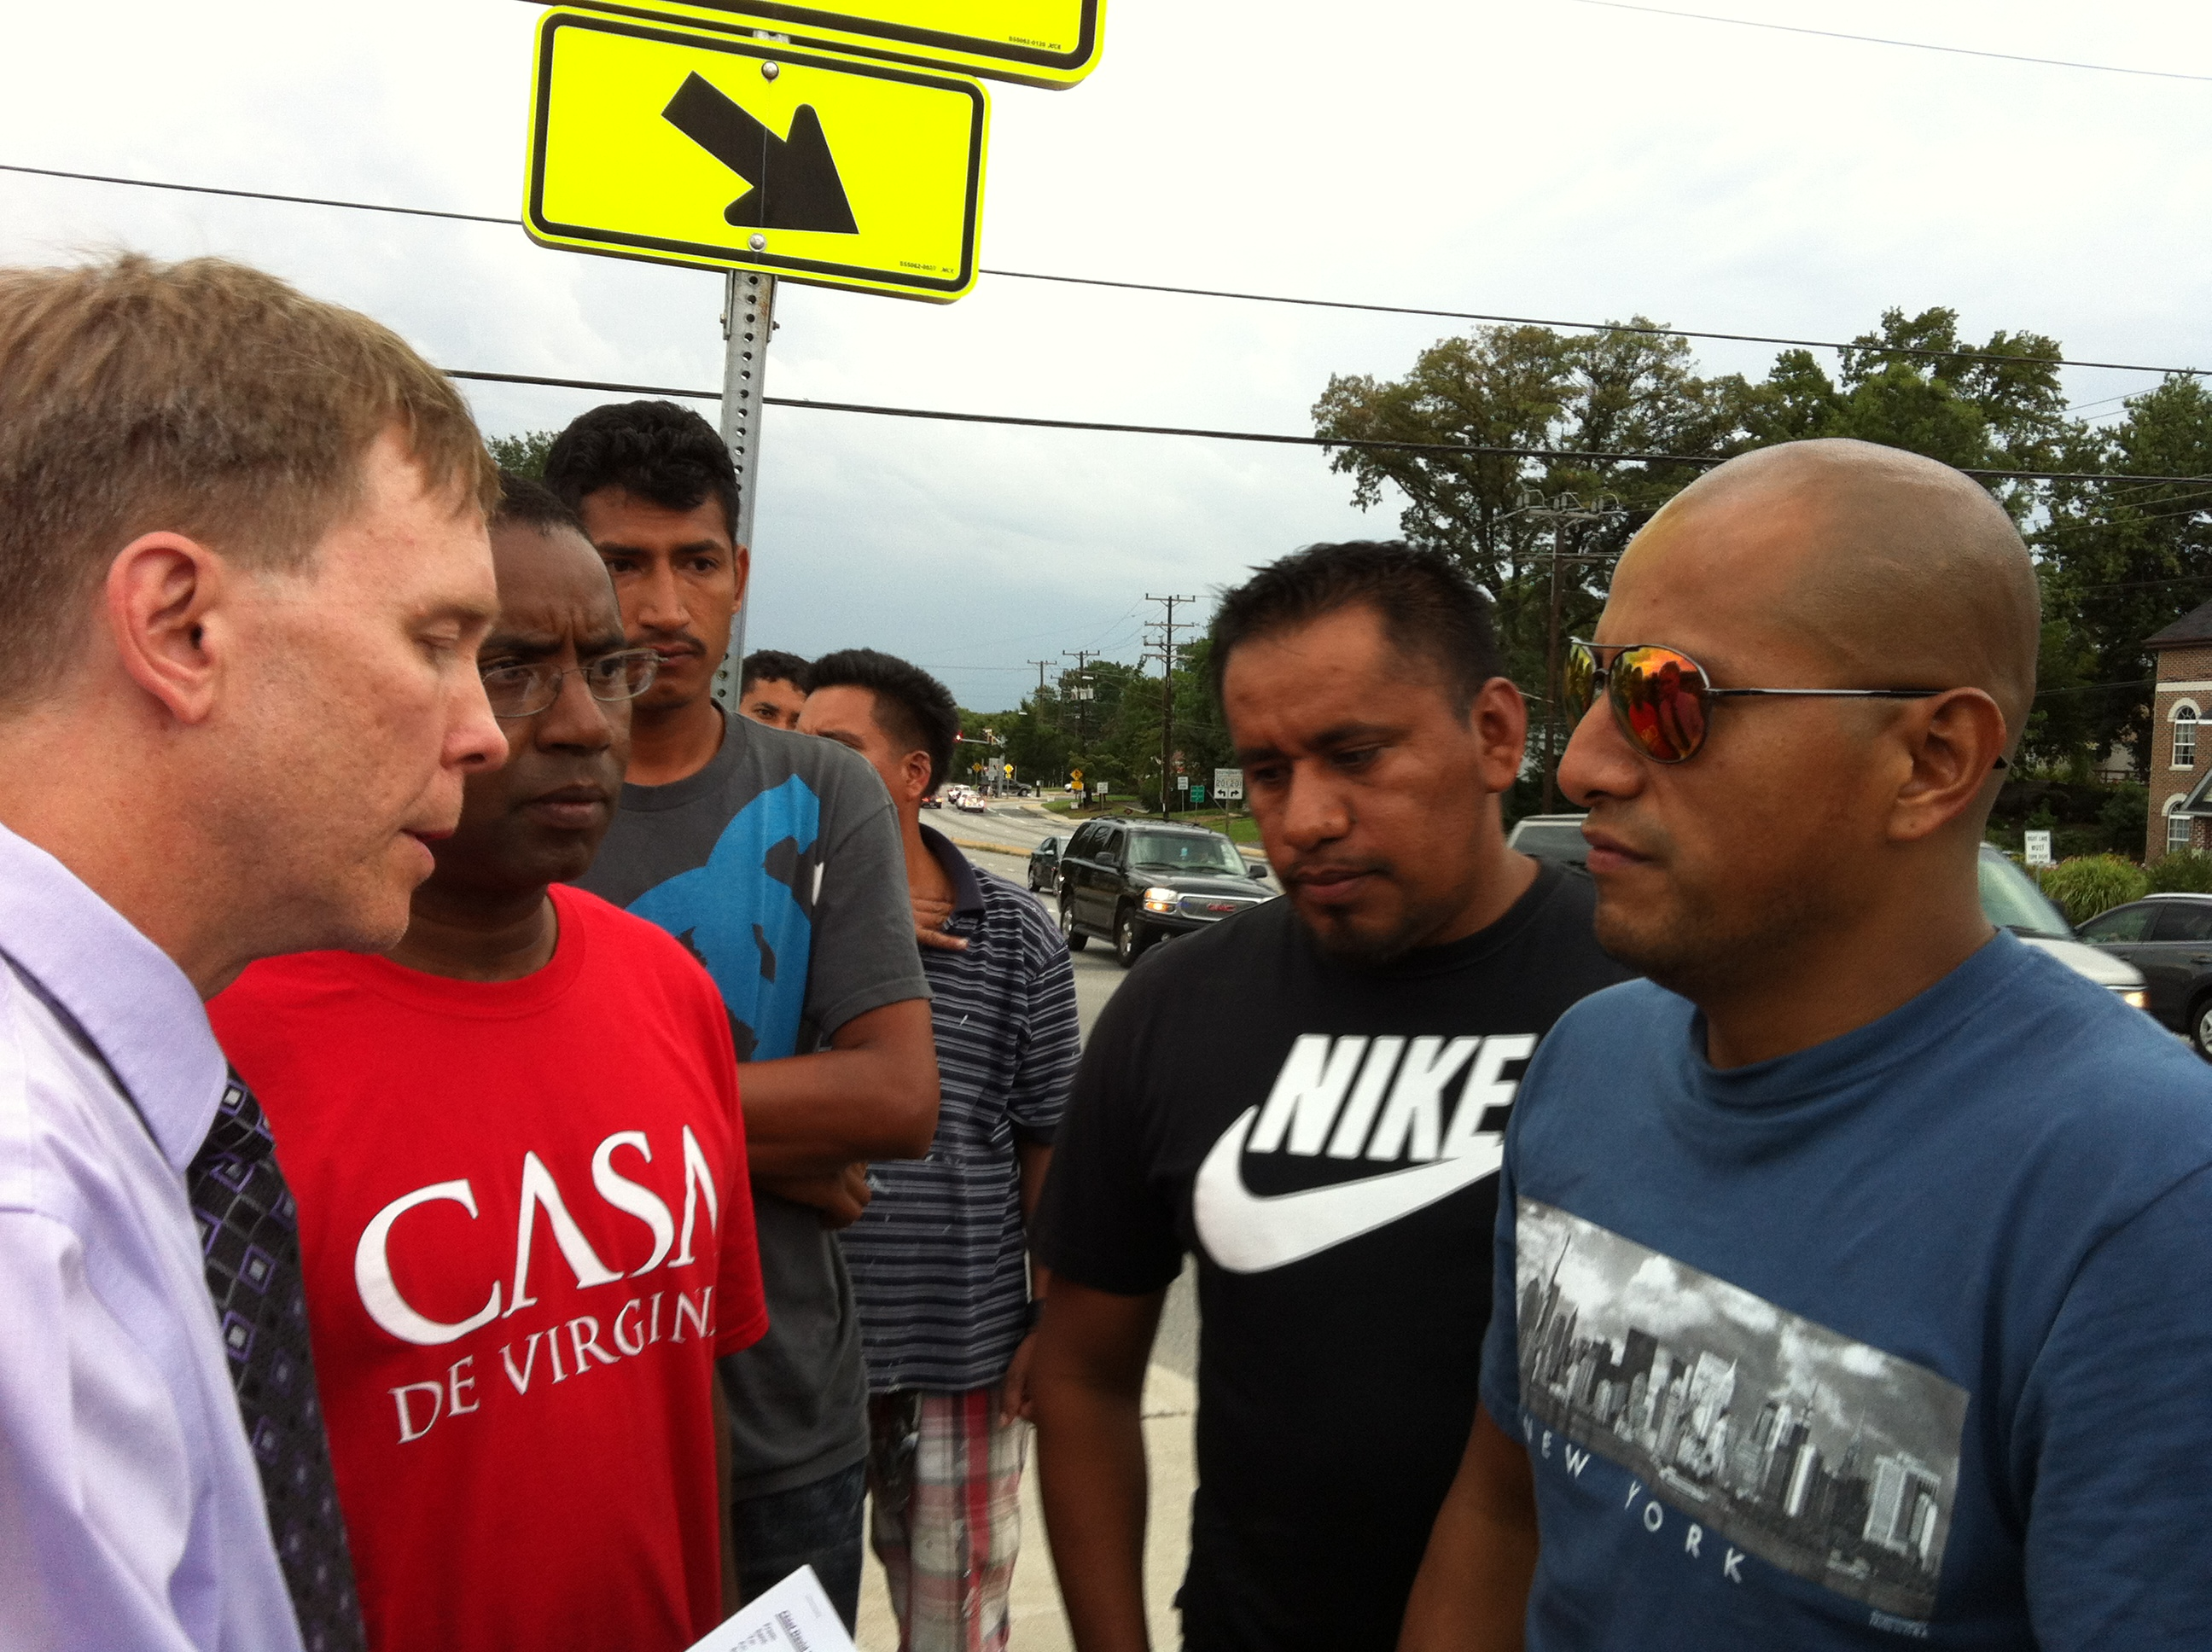 At fatal intersection, residents remember, demand answers